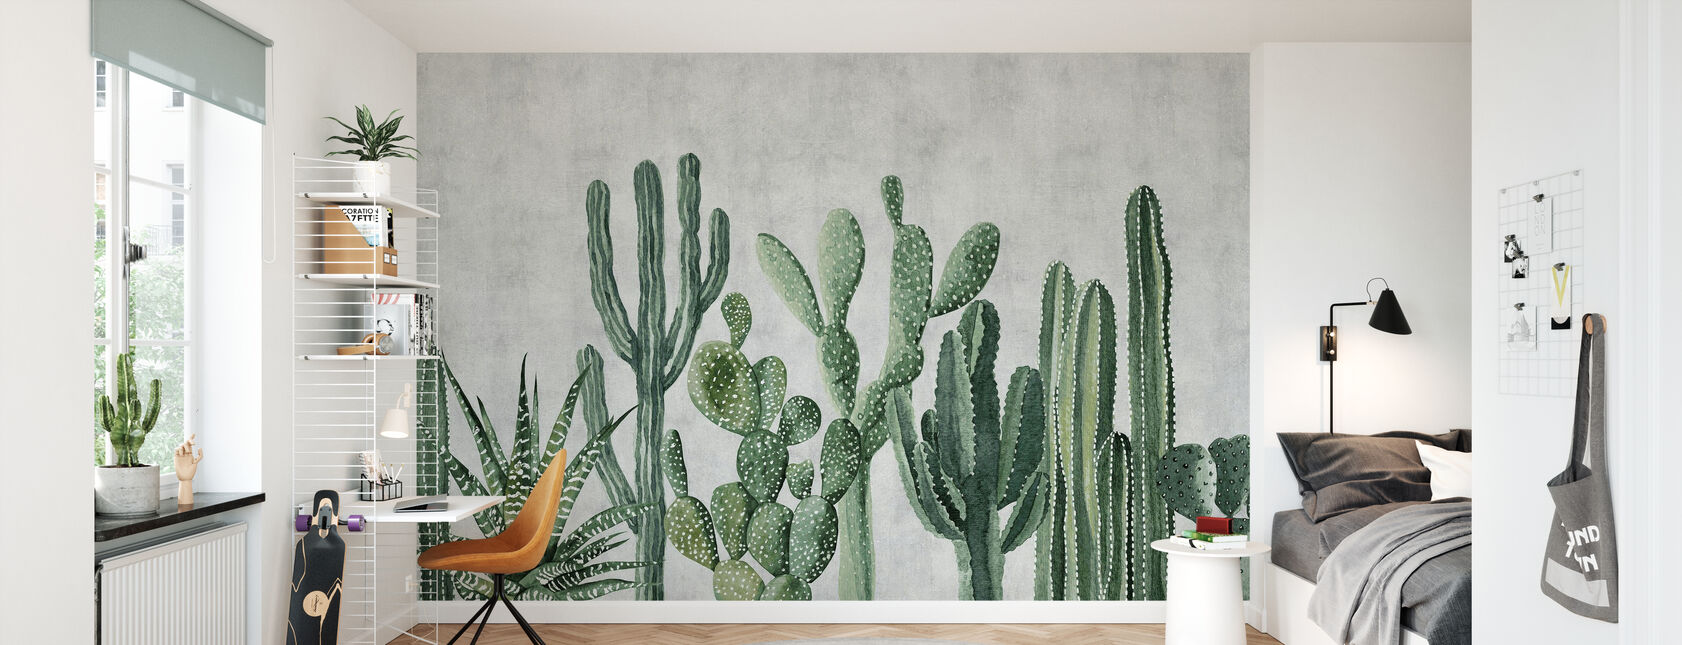 Atacama Cactus - Wallpaper - Kids Room